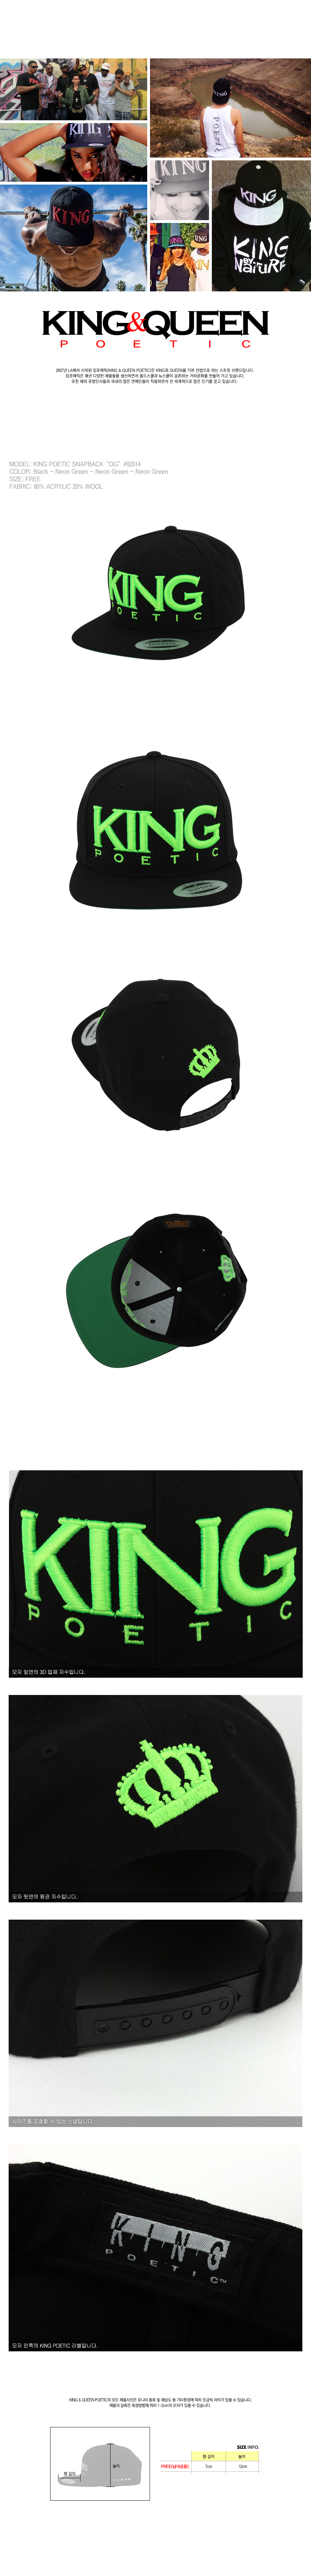 [ KINGPOETIC ] [KINGPOETIC] KING POETIC SNAPBACK OG 02014